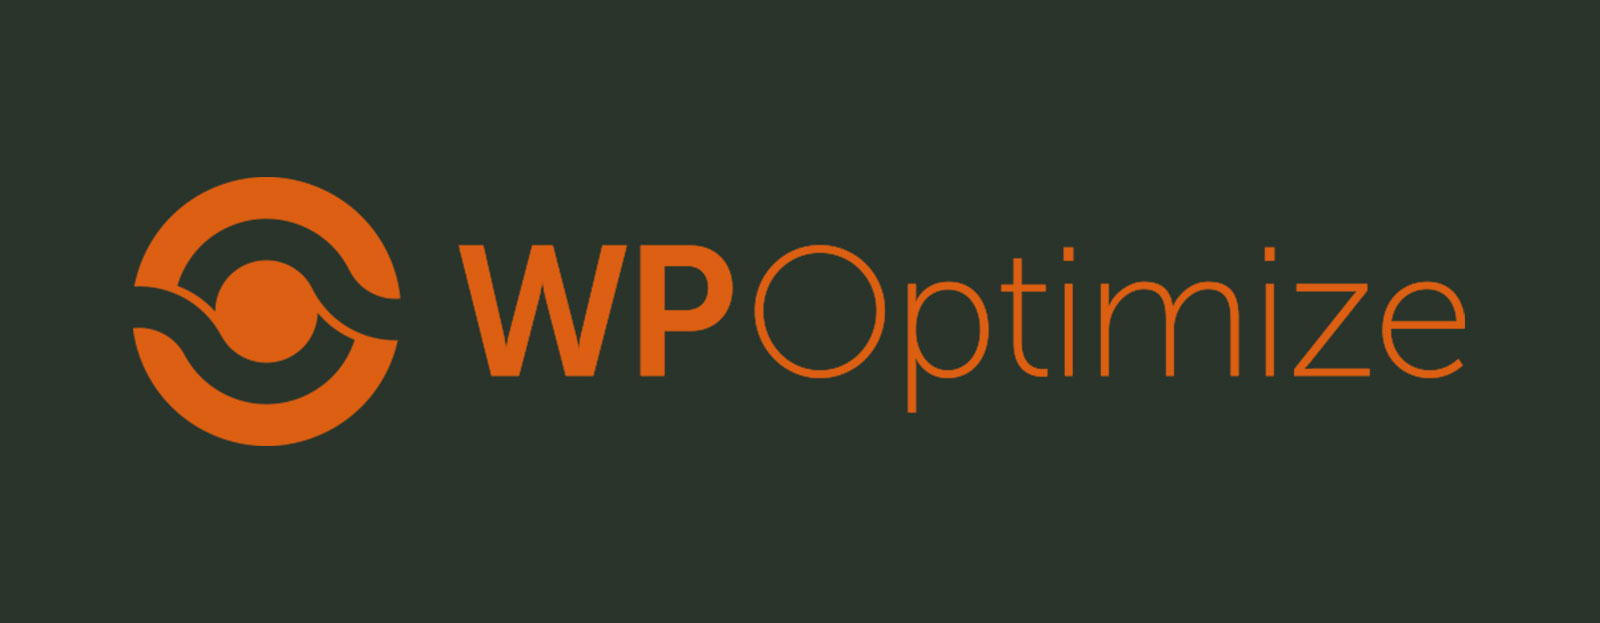 wp-optimize-optimera-wordpress